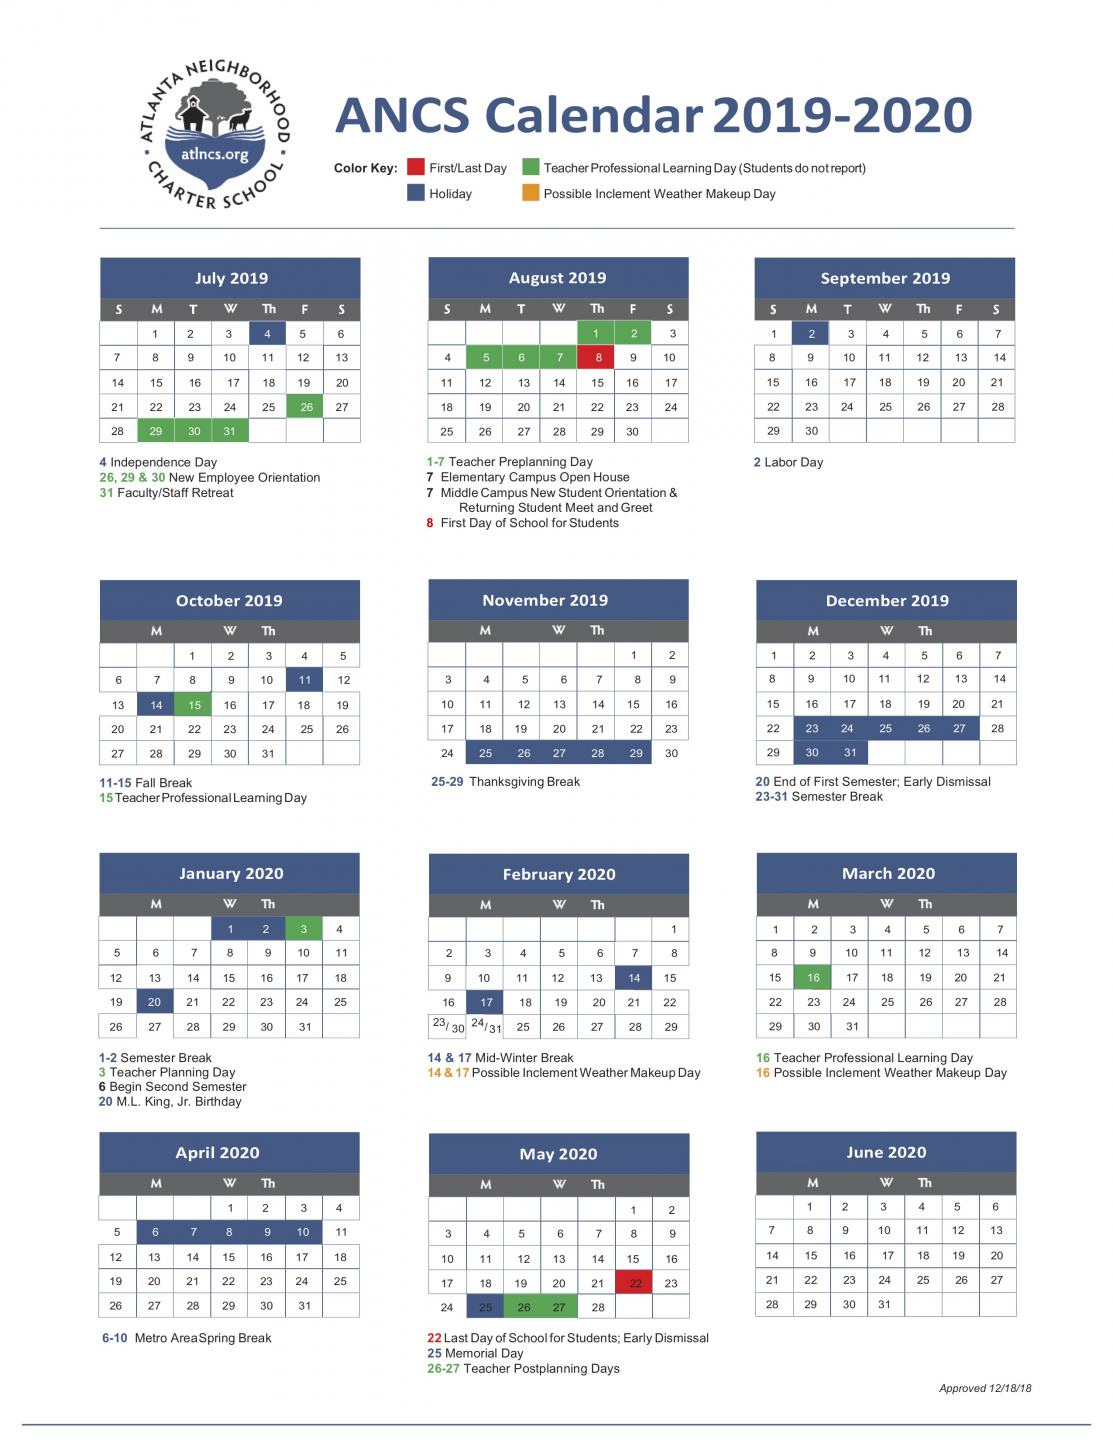 Gegia Calendario.Ancs 2019 2020 School Year Calendar Atlanta Neighborhood